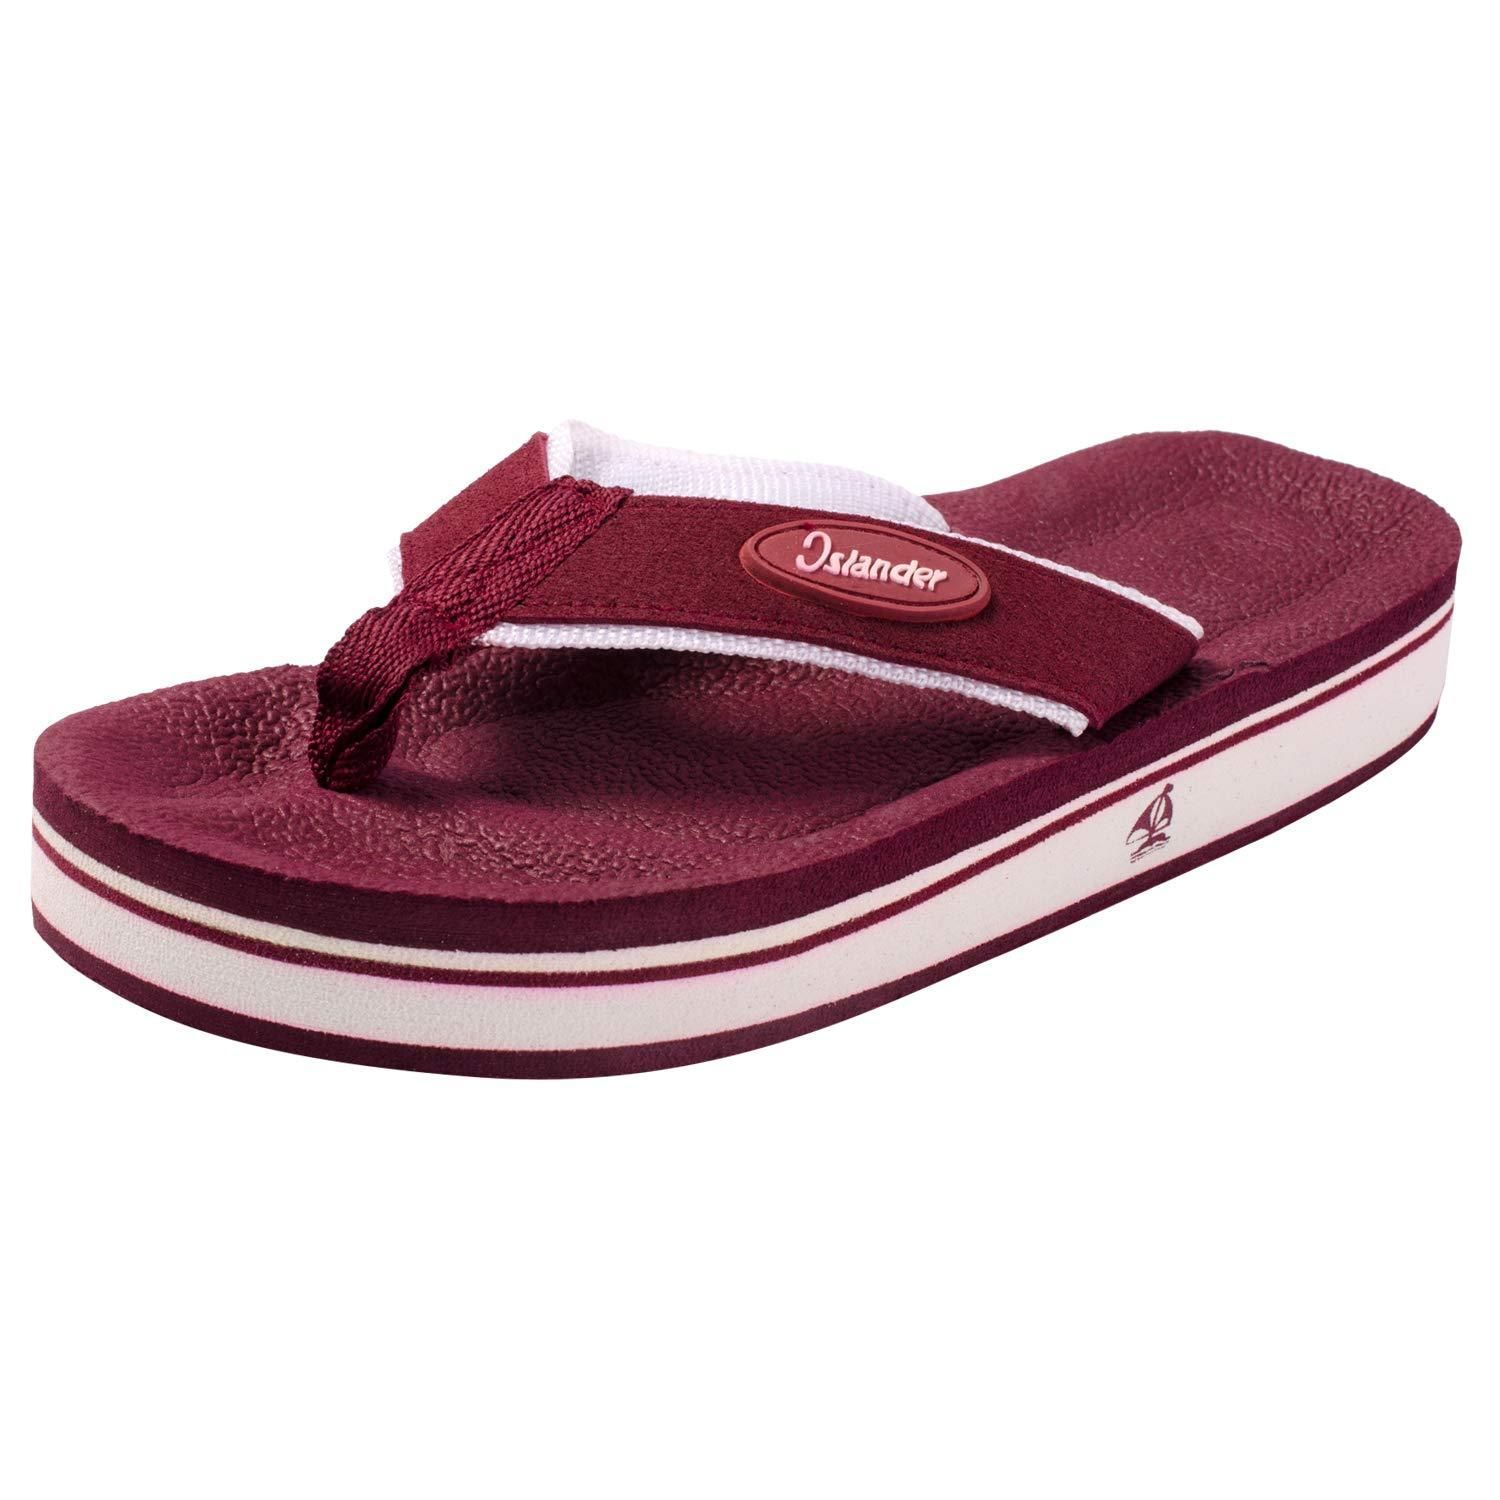 Islander Unisex All Weather Comfortable And Stylish Flip Flop